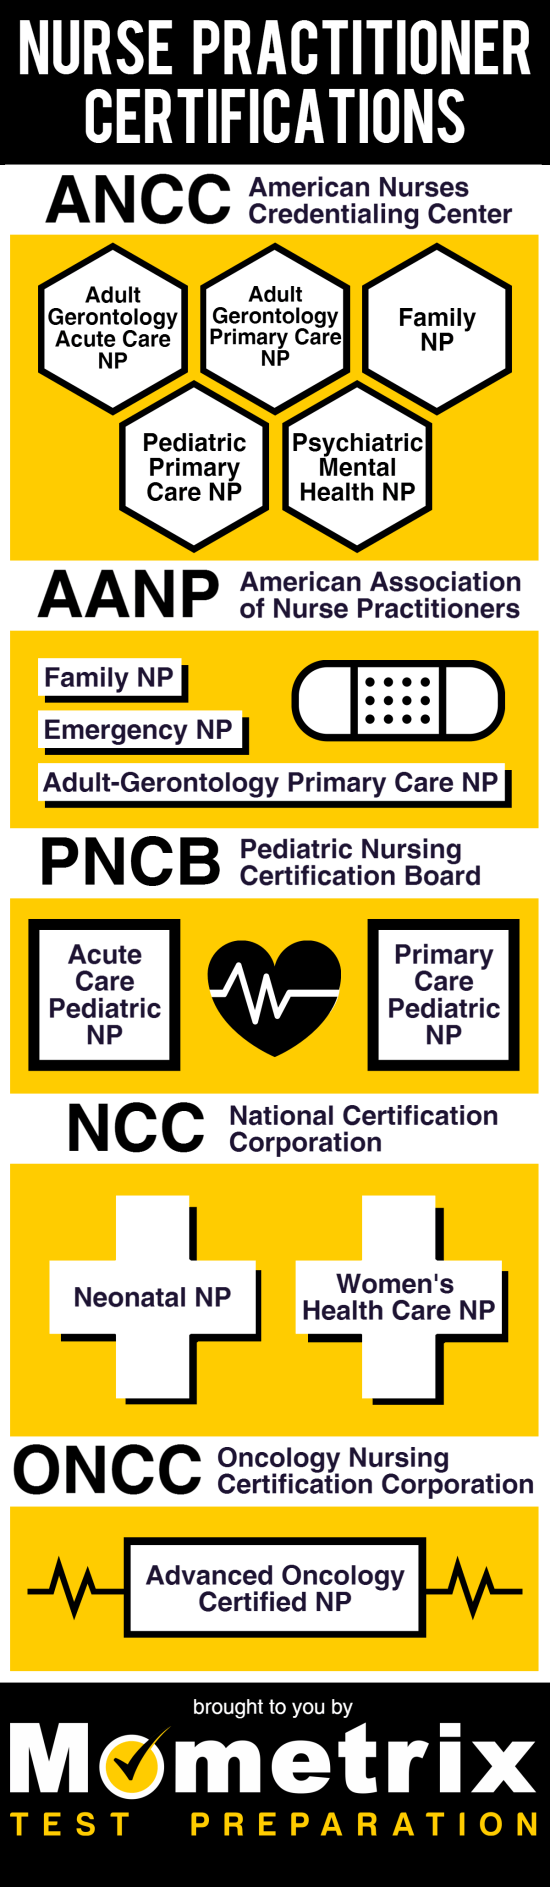 Nurse Practitioner Certifications Infographic Nurse Nurse